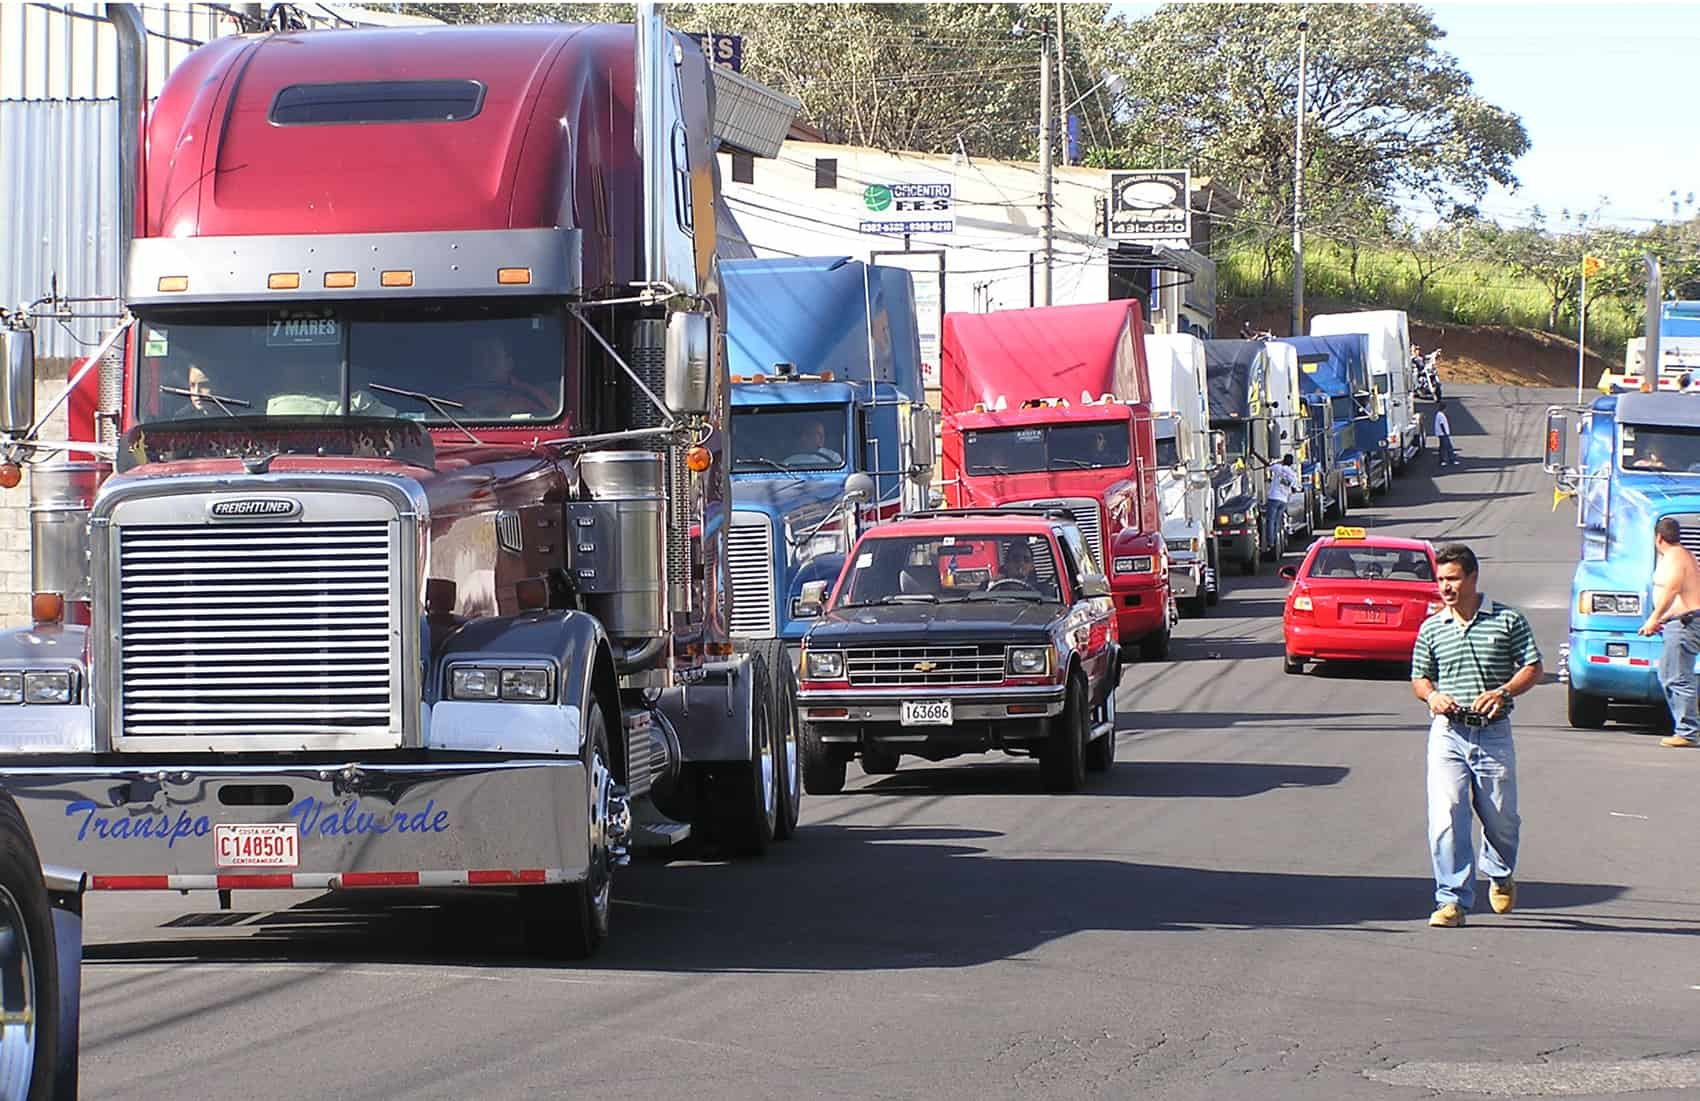 Trucks in Costa Rica